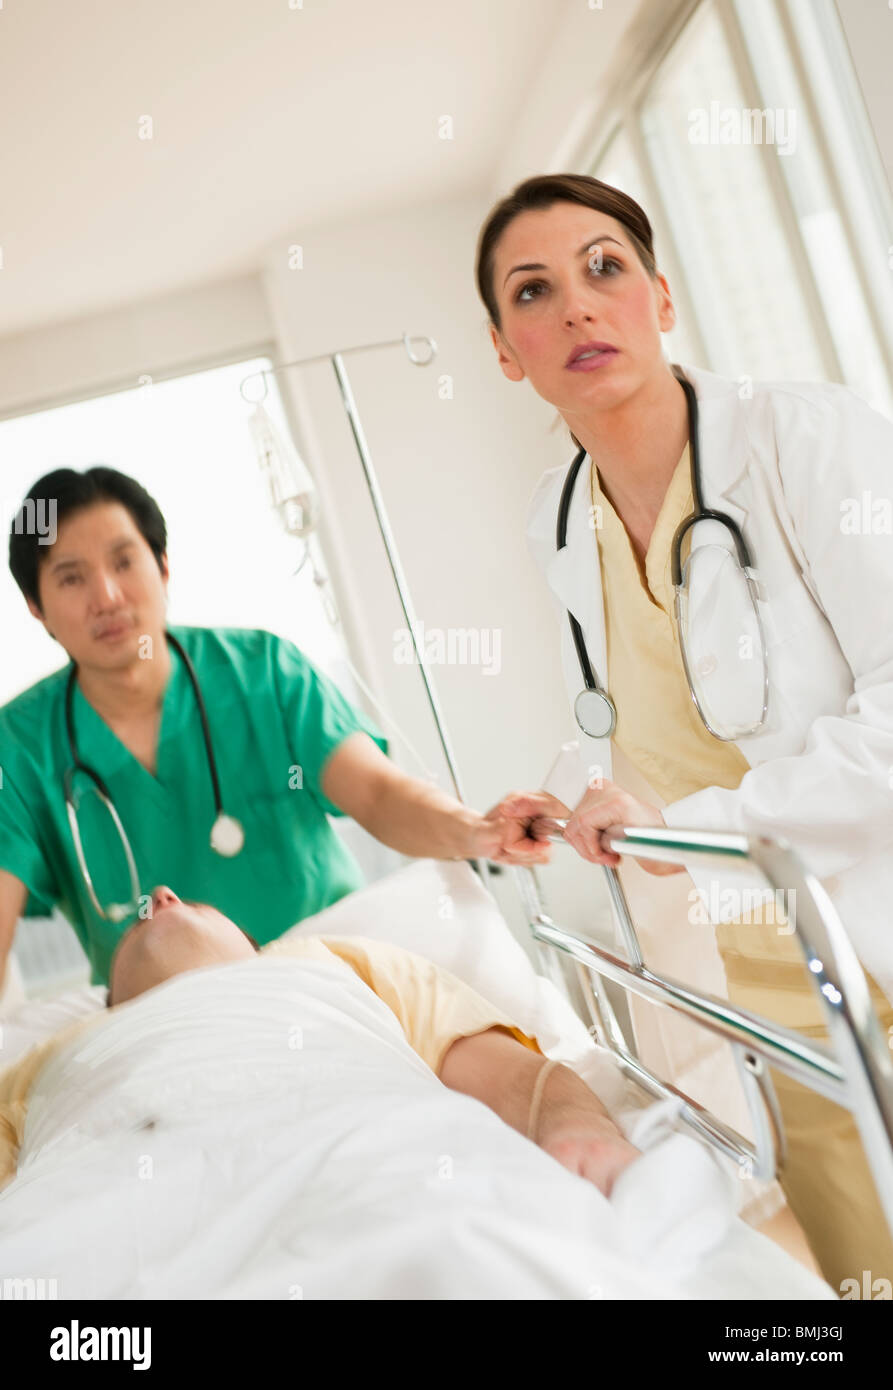 Healthcare workers pushing gurney in emergency room - Stock Image